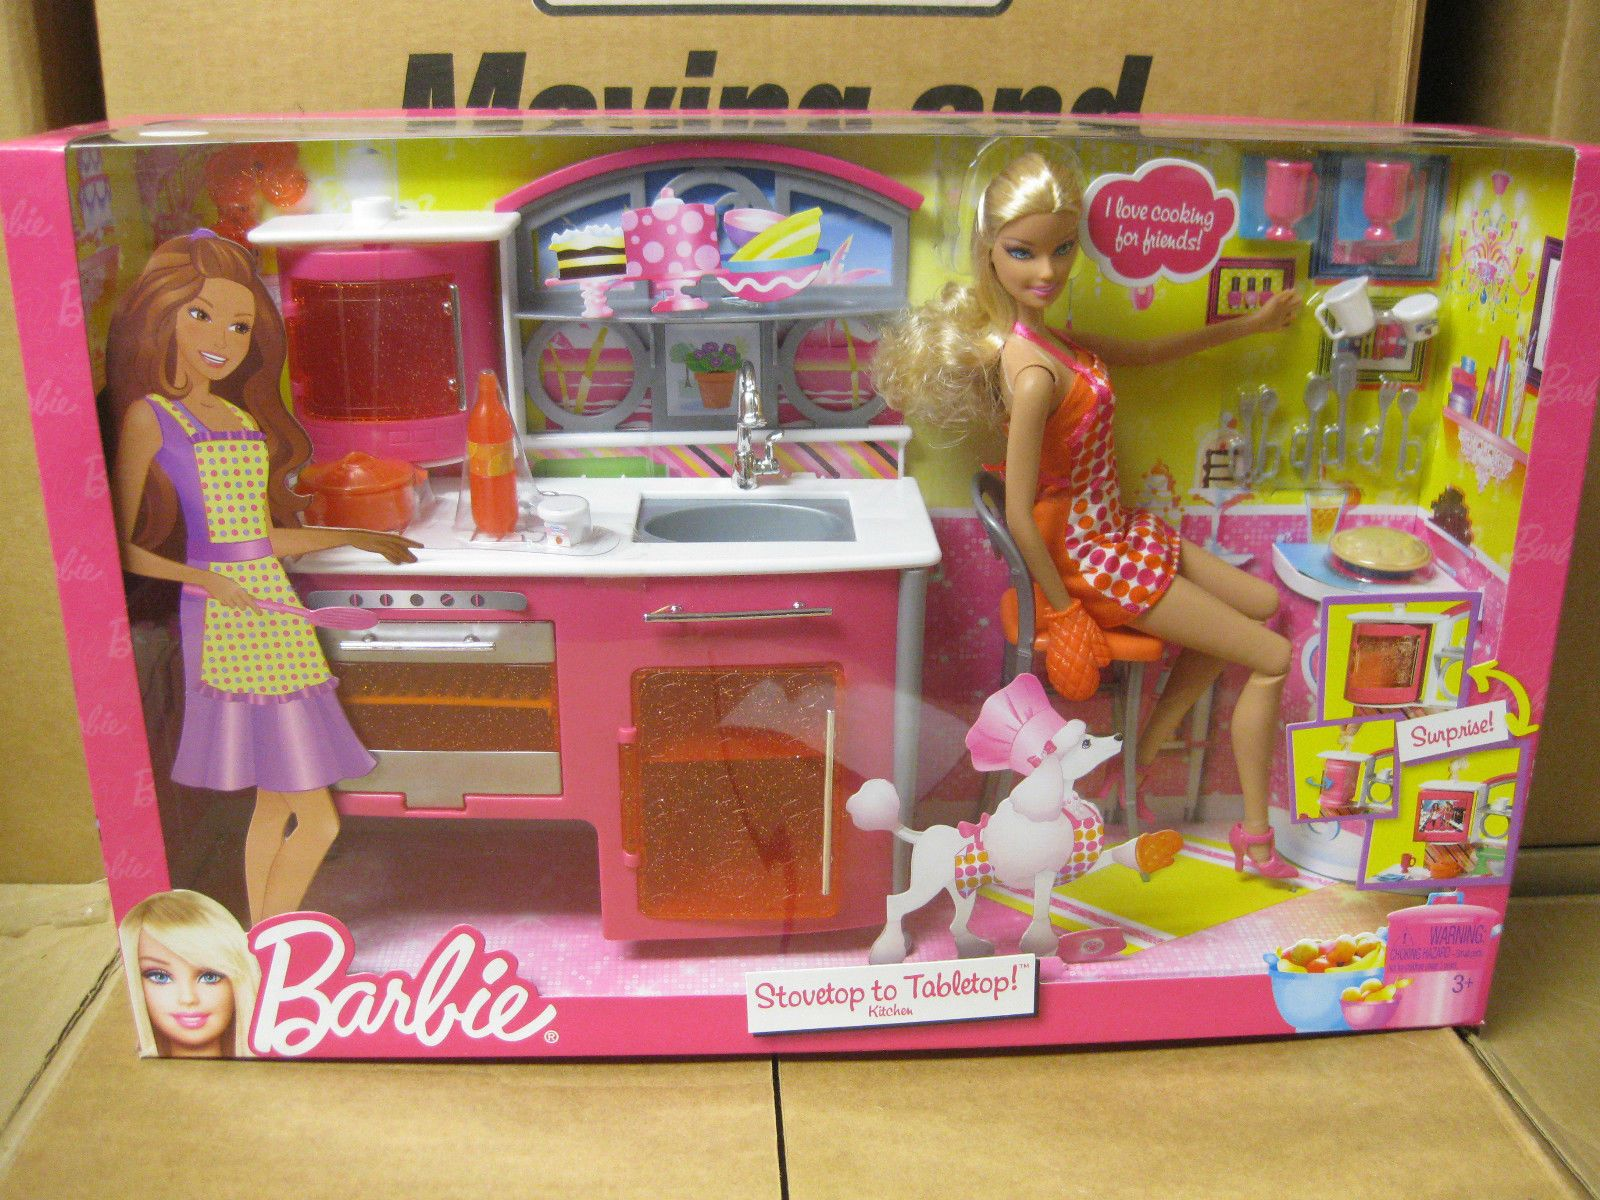 Barbie Kitchen Playset Types Of Flooring Stovetop To Tabletop By Mattel 2011 Words